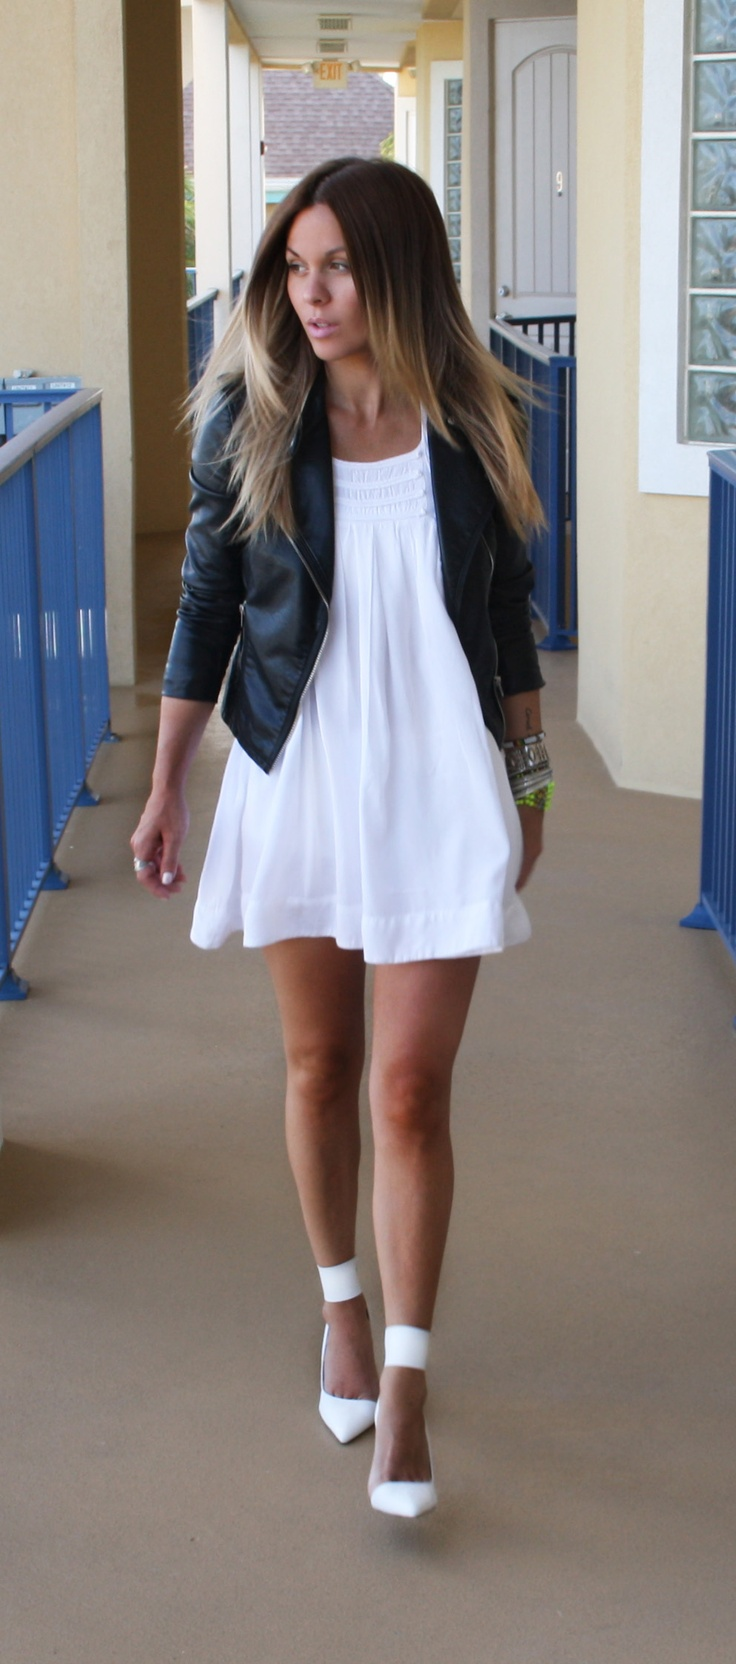 White pointy pumps / Black leather jacket  (Seriously having a white pump moment) yes i agree i sooooo love those white pointy pumps too i must go out and get a pair awwwww there georogus mwah x